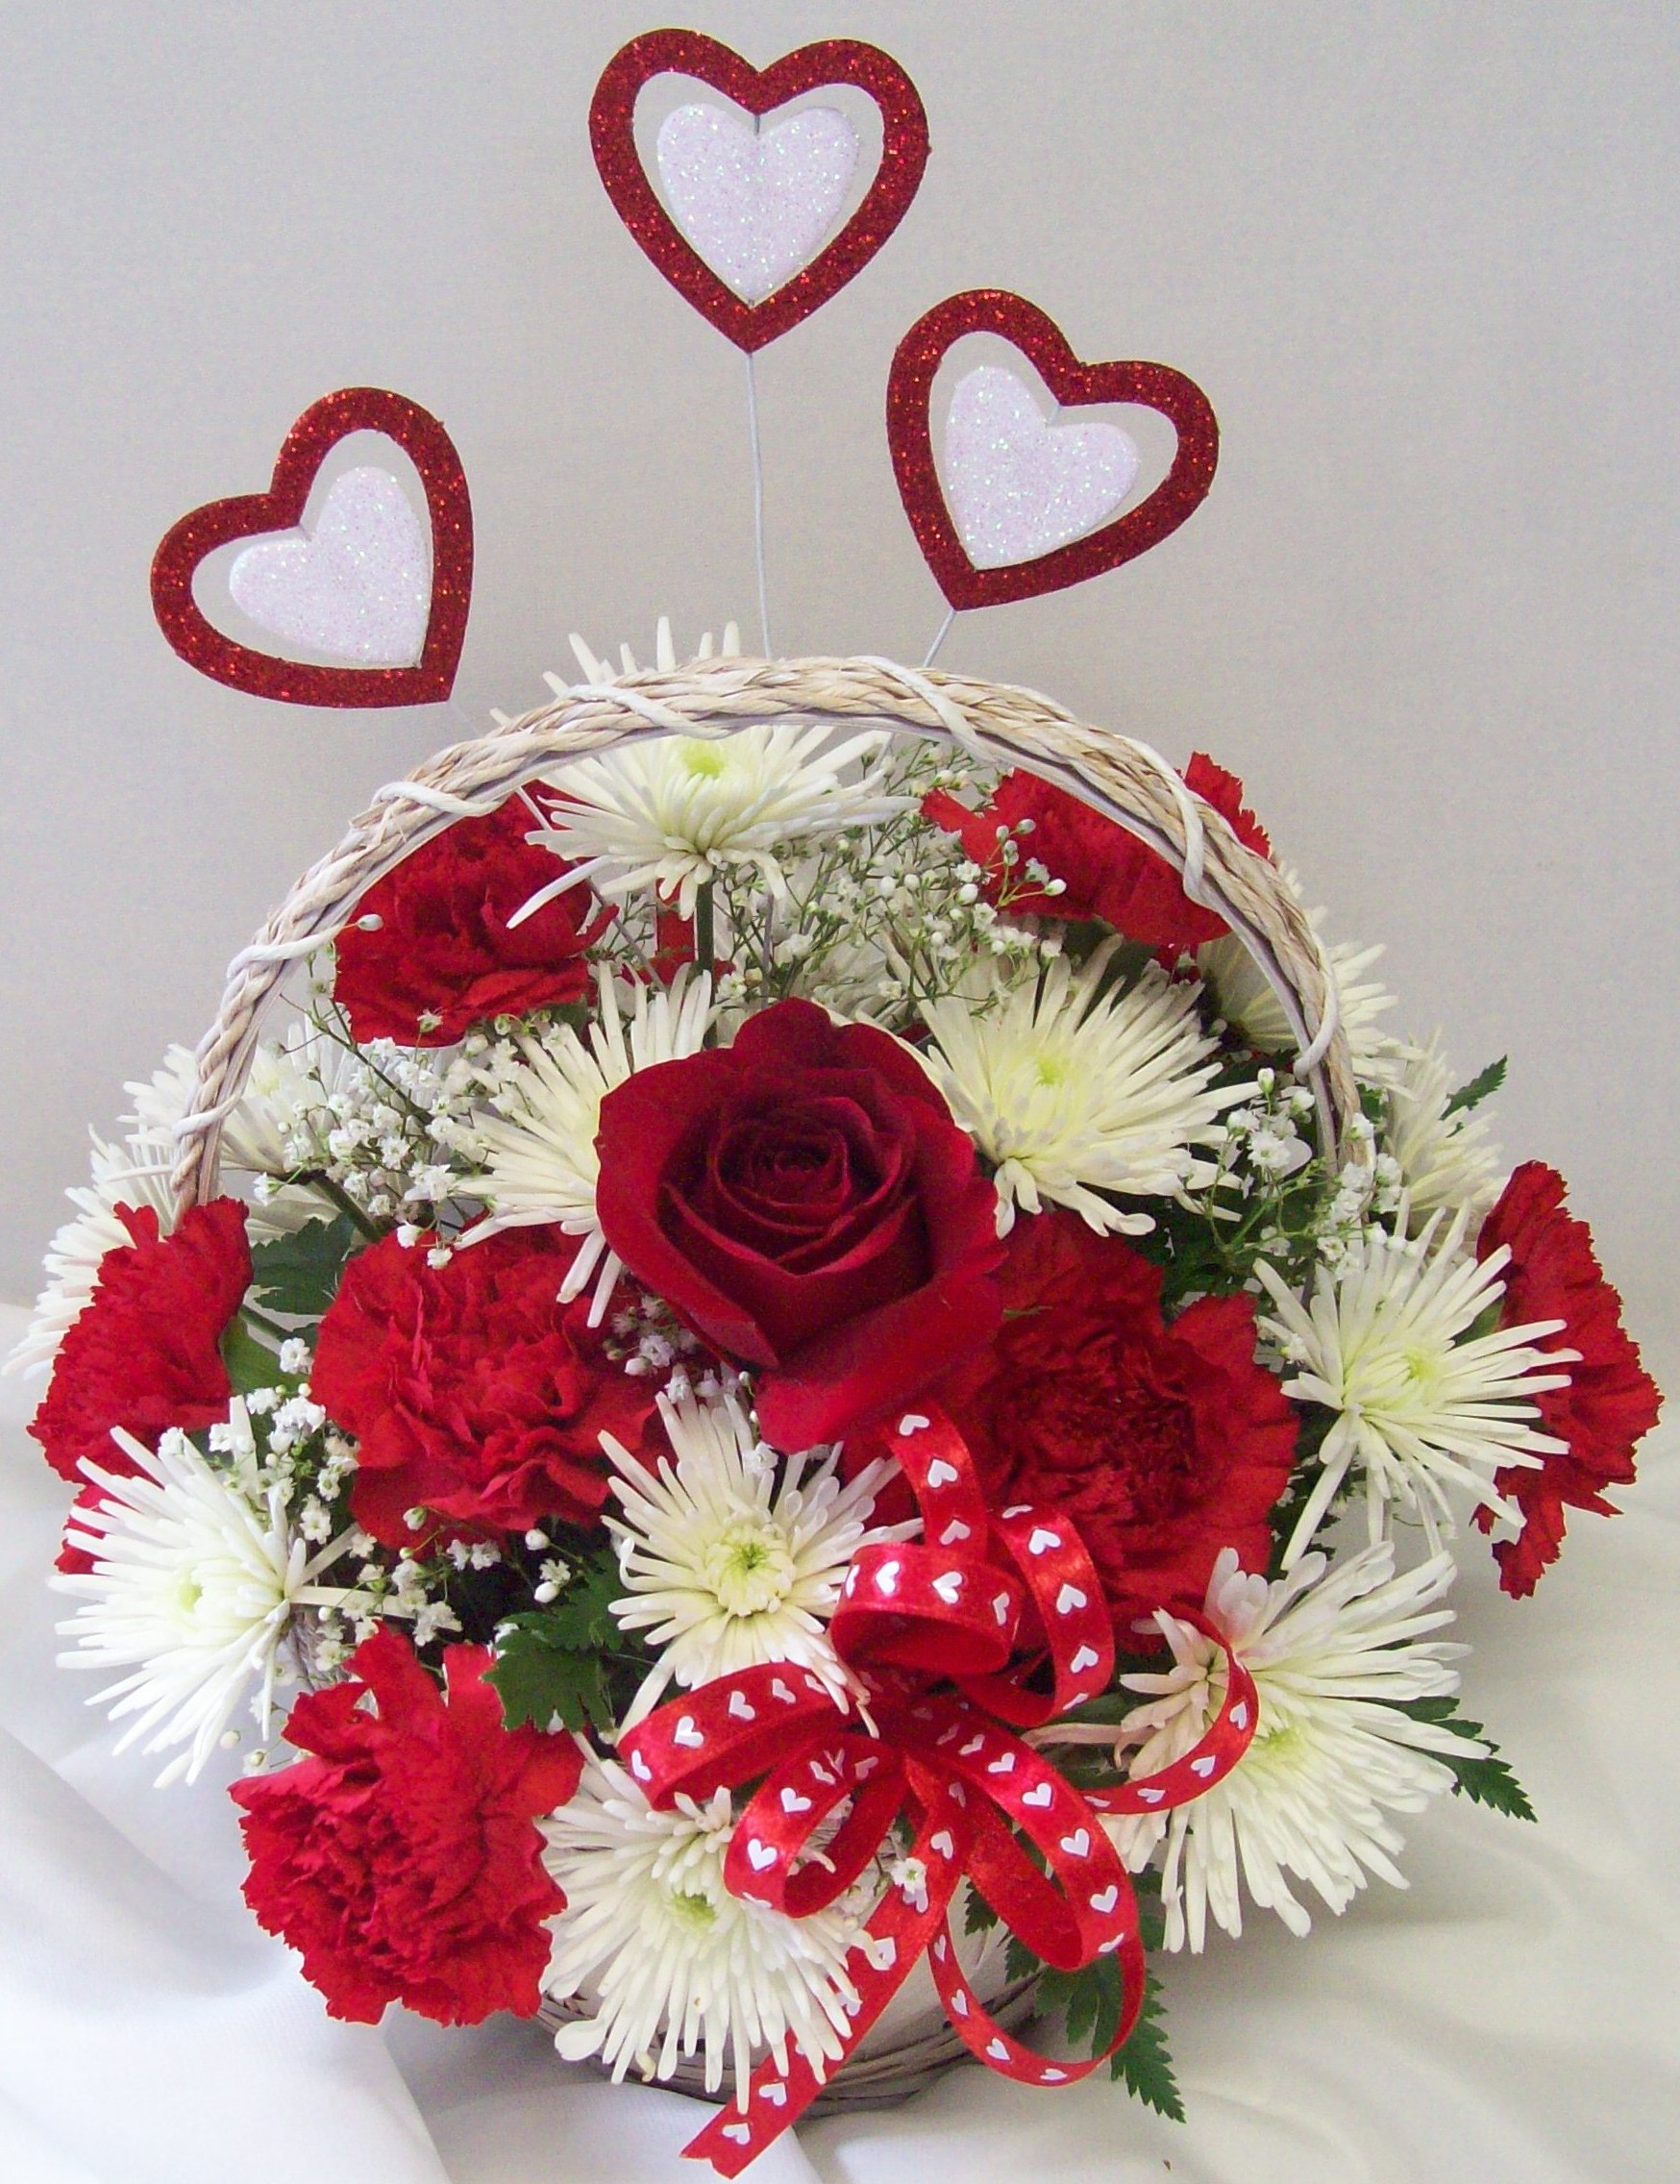 valentines day flowers florist arrangements, Beautiful flower